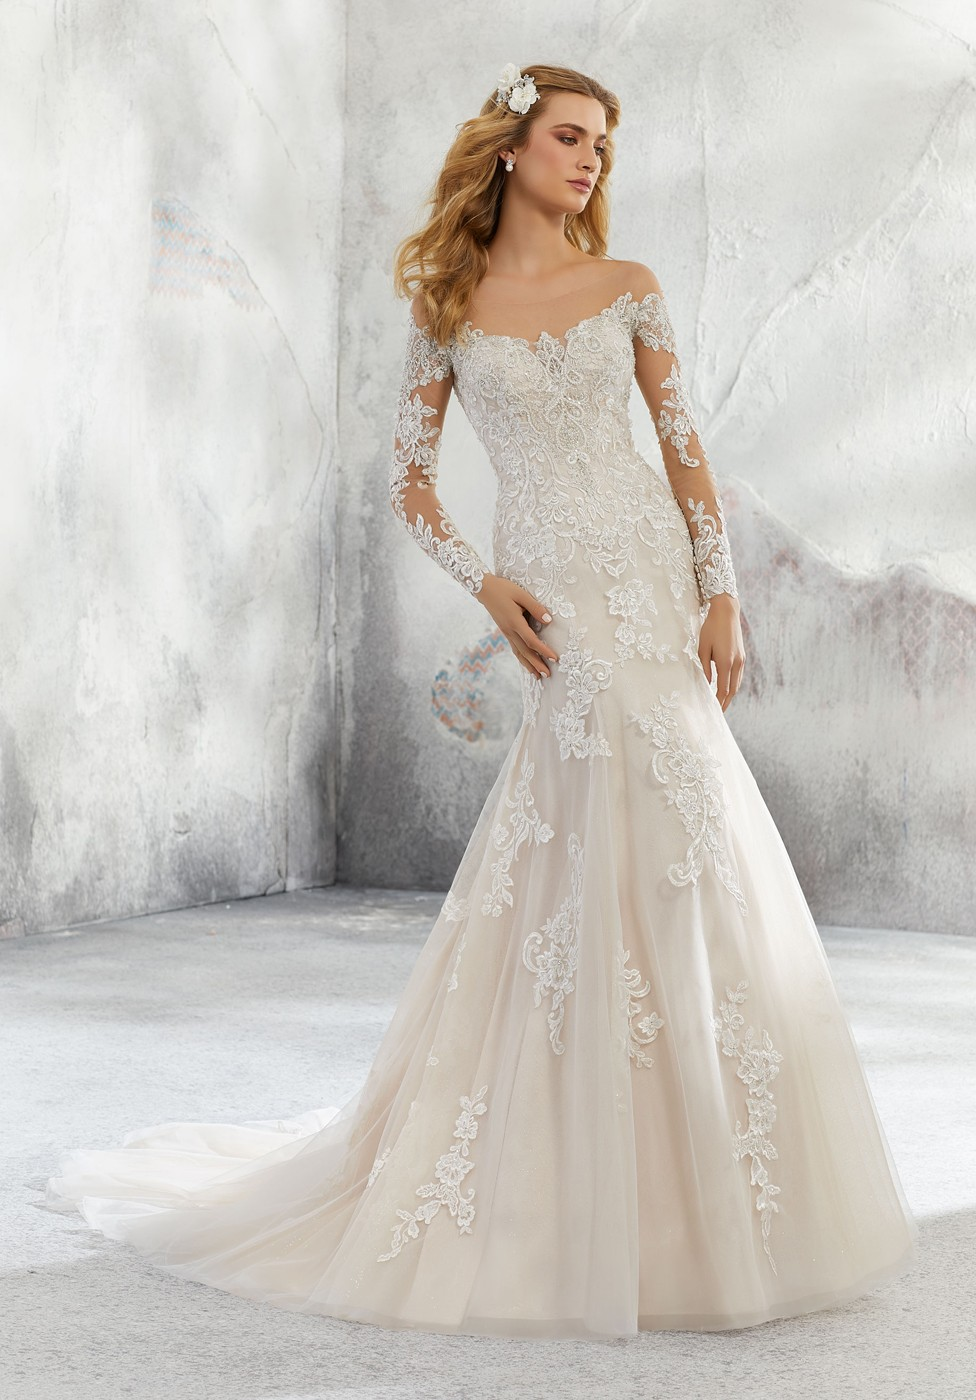 Mori Lee 8293 Leighton Dress - MadameBridal.com